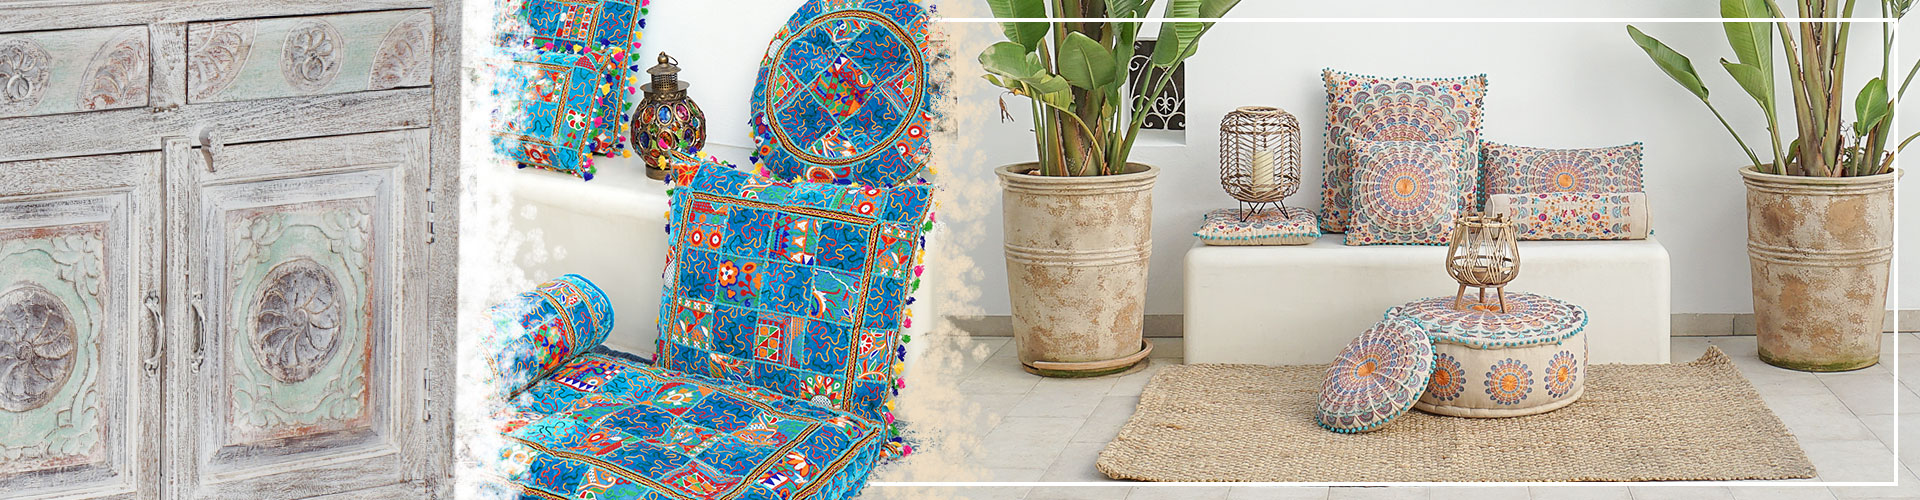 Wholesale of gifts and home decoration items | ITEM